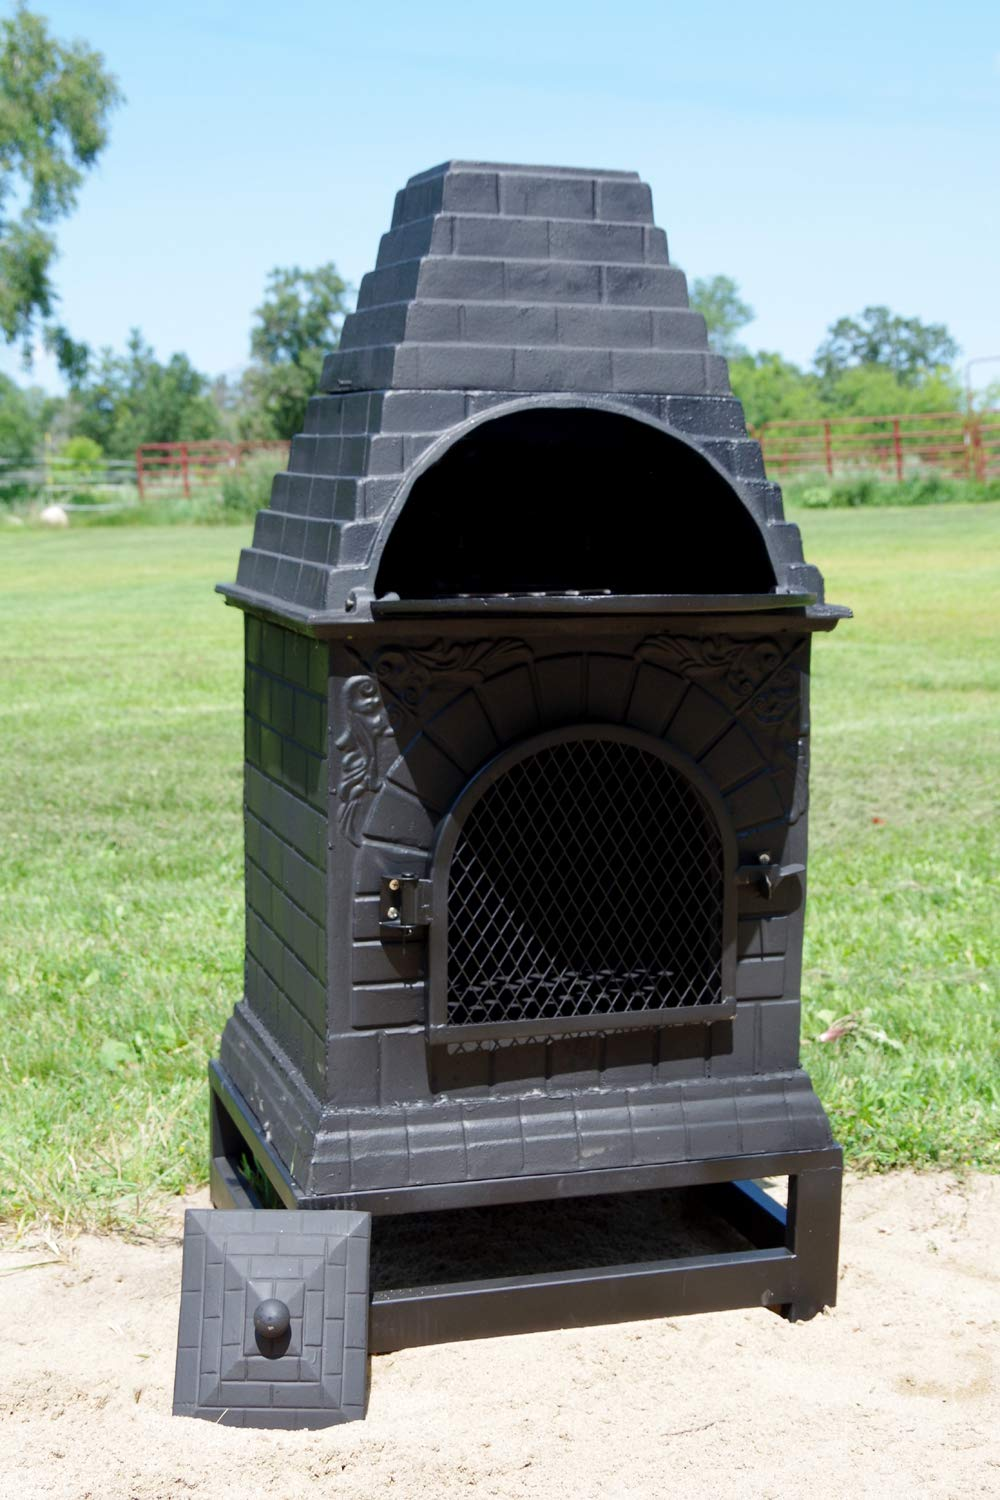 Amazon.com: The Blue Rooster Co. chimenea de hierro fundido ...